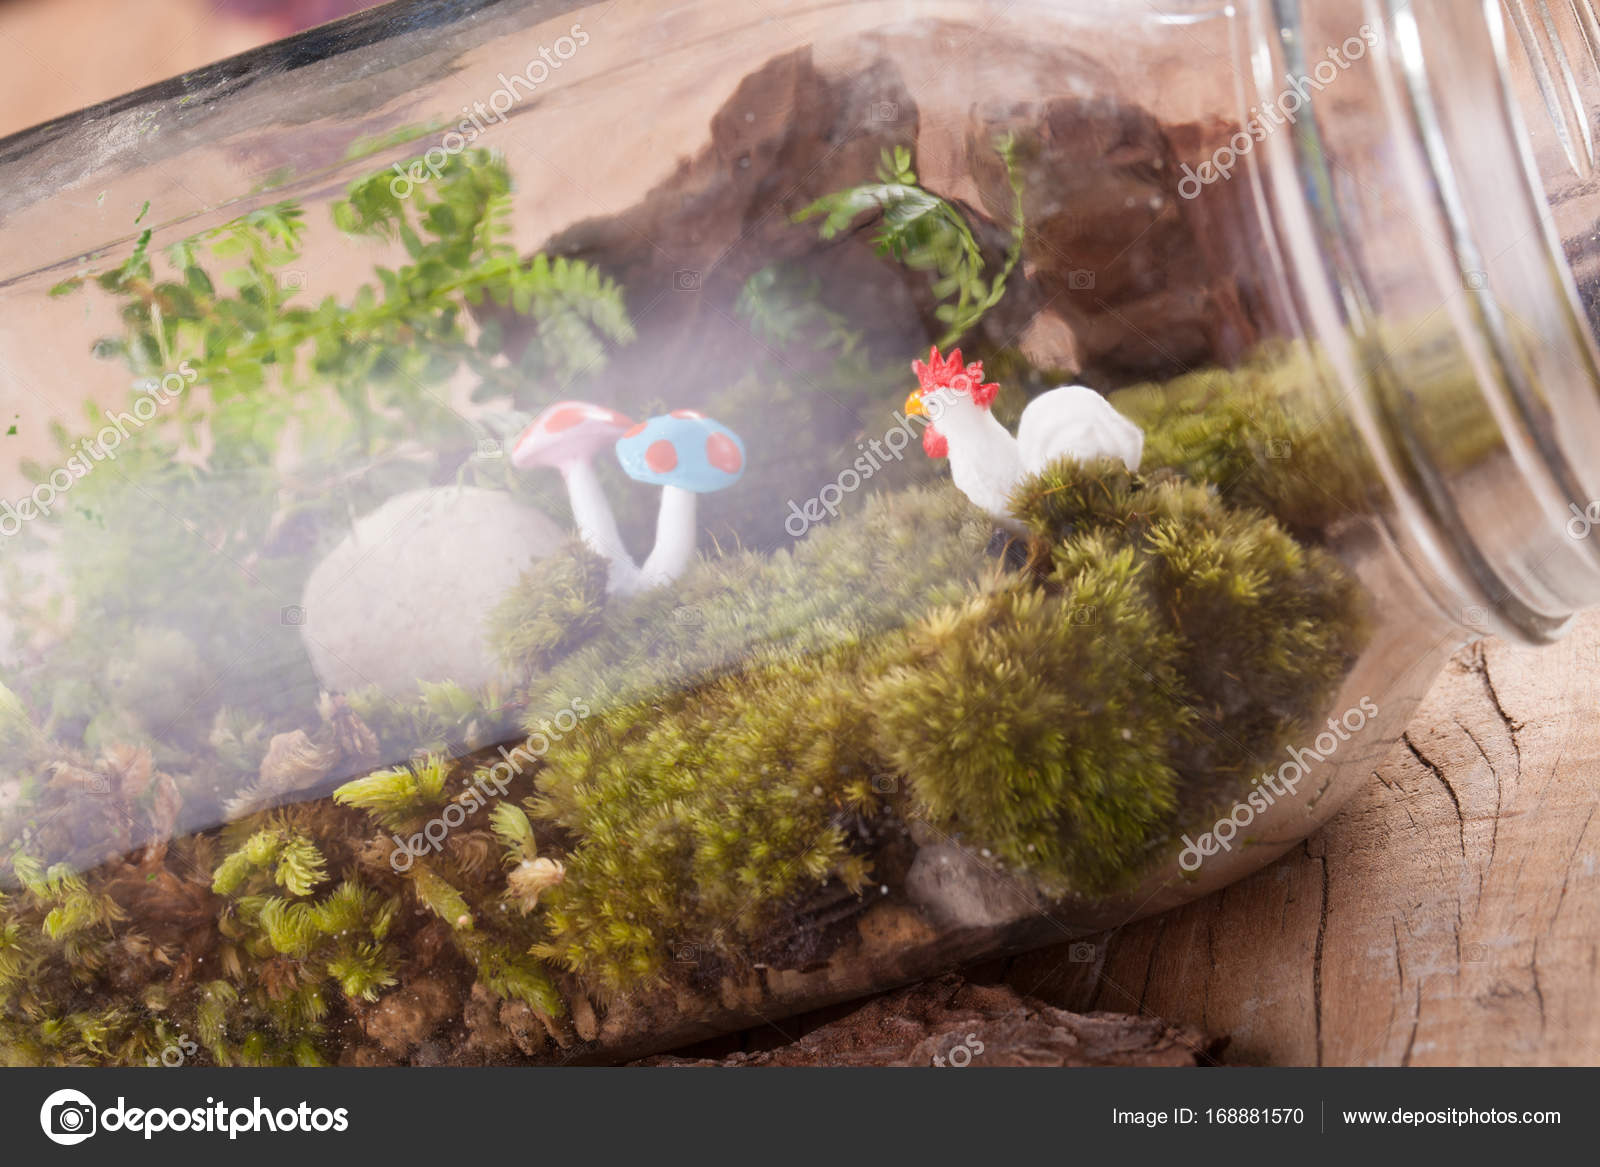 A Terrarium Garden Scene In A Clear Bottle With Moss Pebble Chicken And Mushroom Toy Put On Wooden Table Stock Photo C Akeeris 168881570